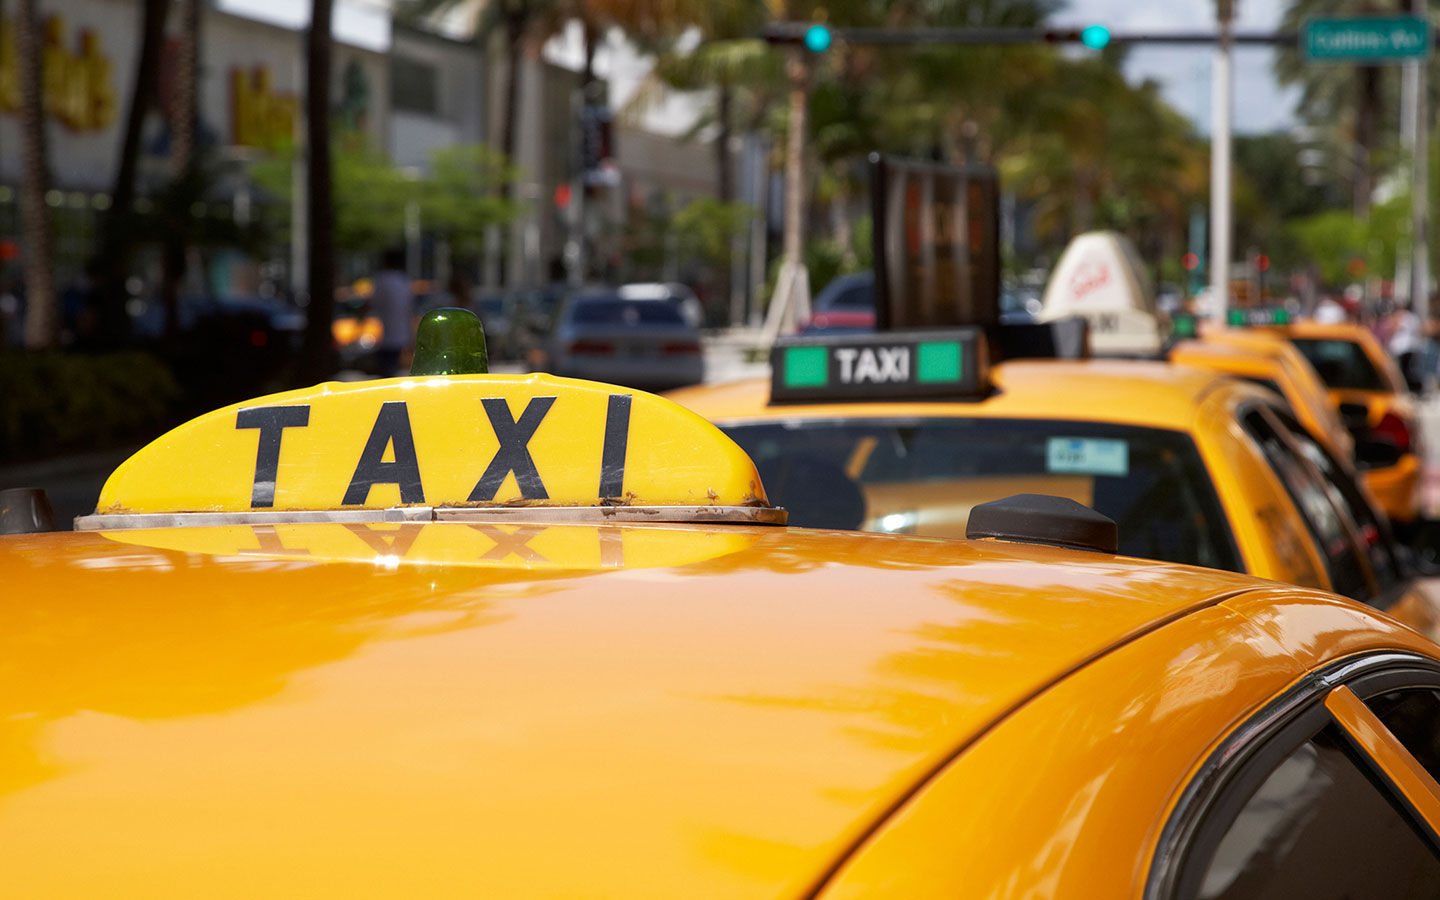 How To Get a Taxi in Miami